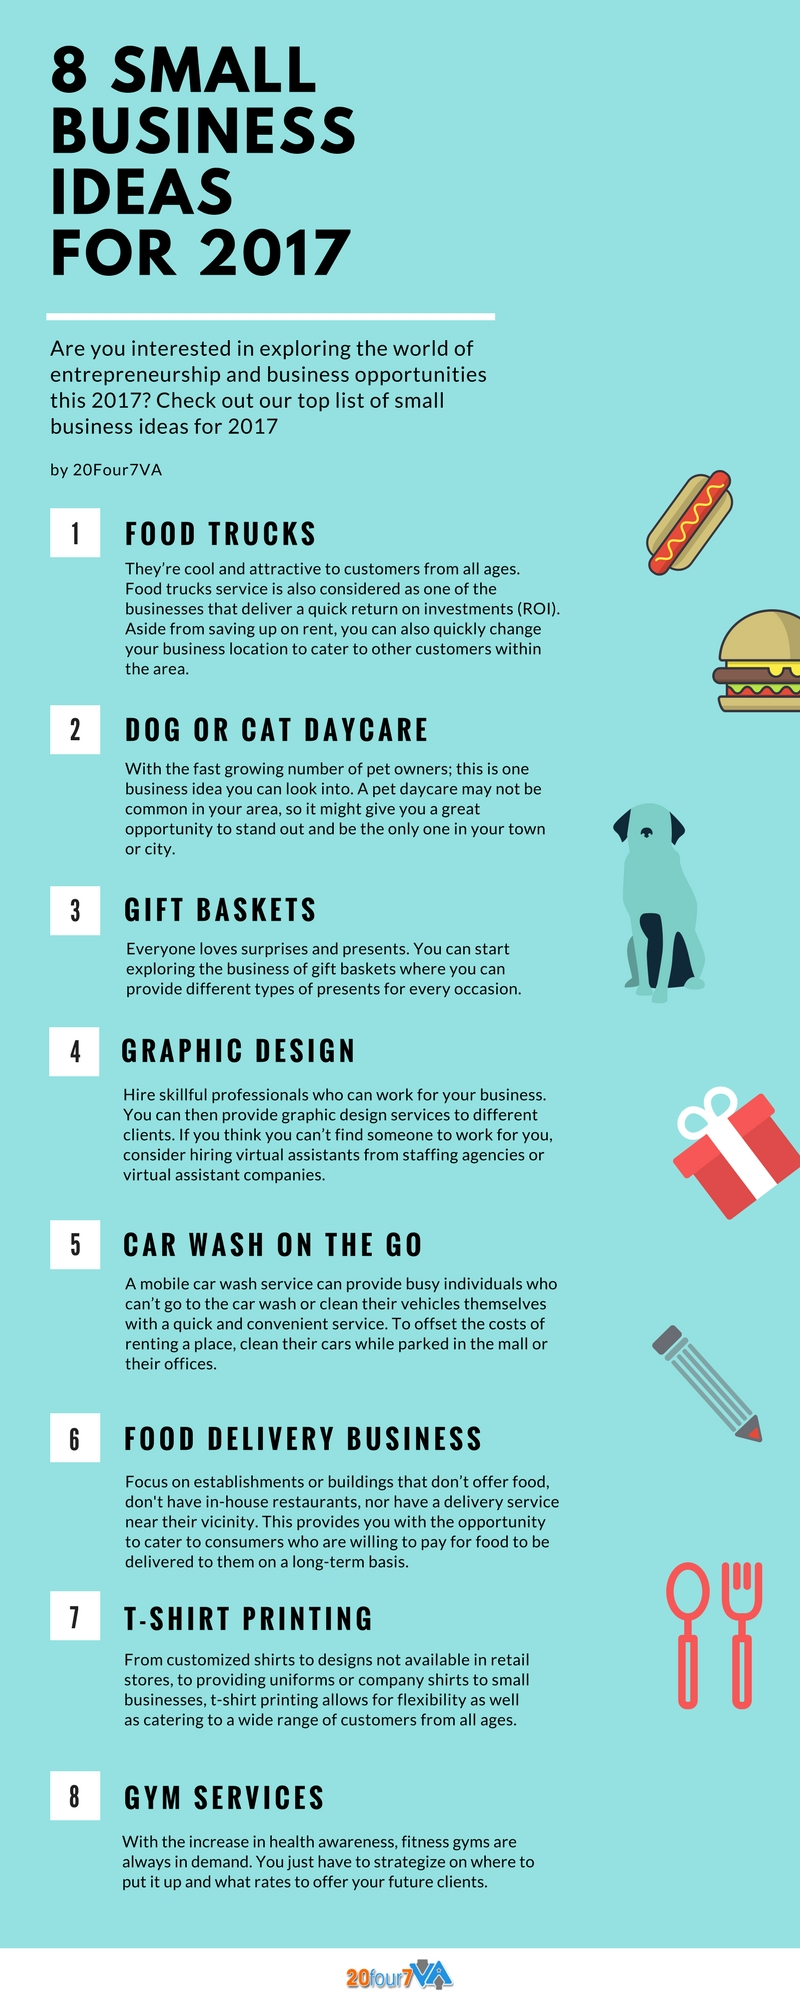 10 Awesome Ideas For A Small Business 8 small business ideas for 2017 20four7va 1